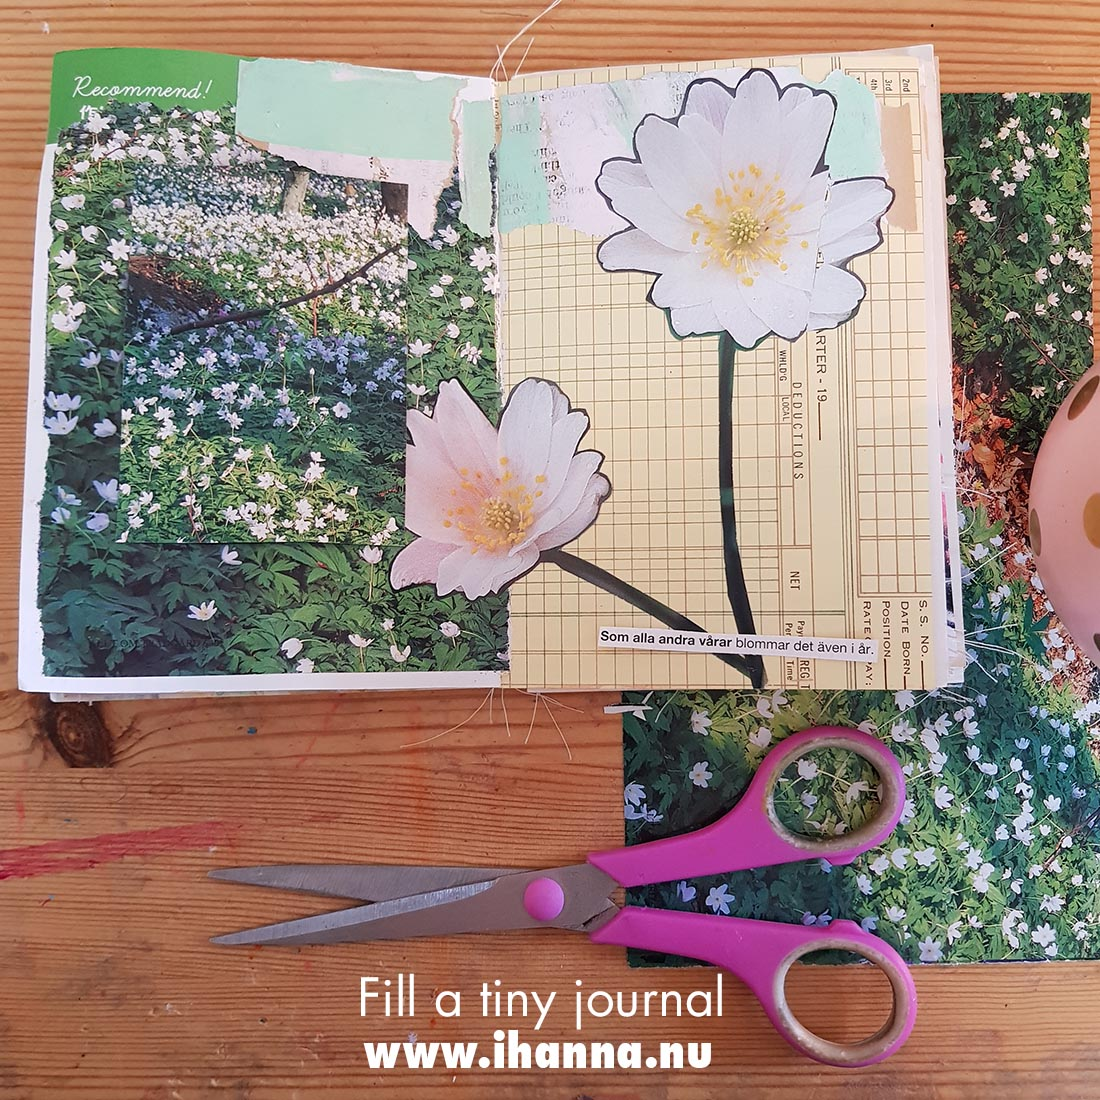 Fill a tiny journal (spring prompt presented) by iHanna #fillatinyjournal